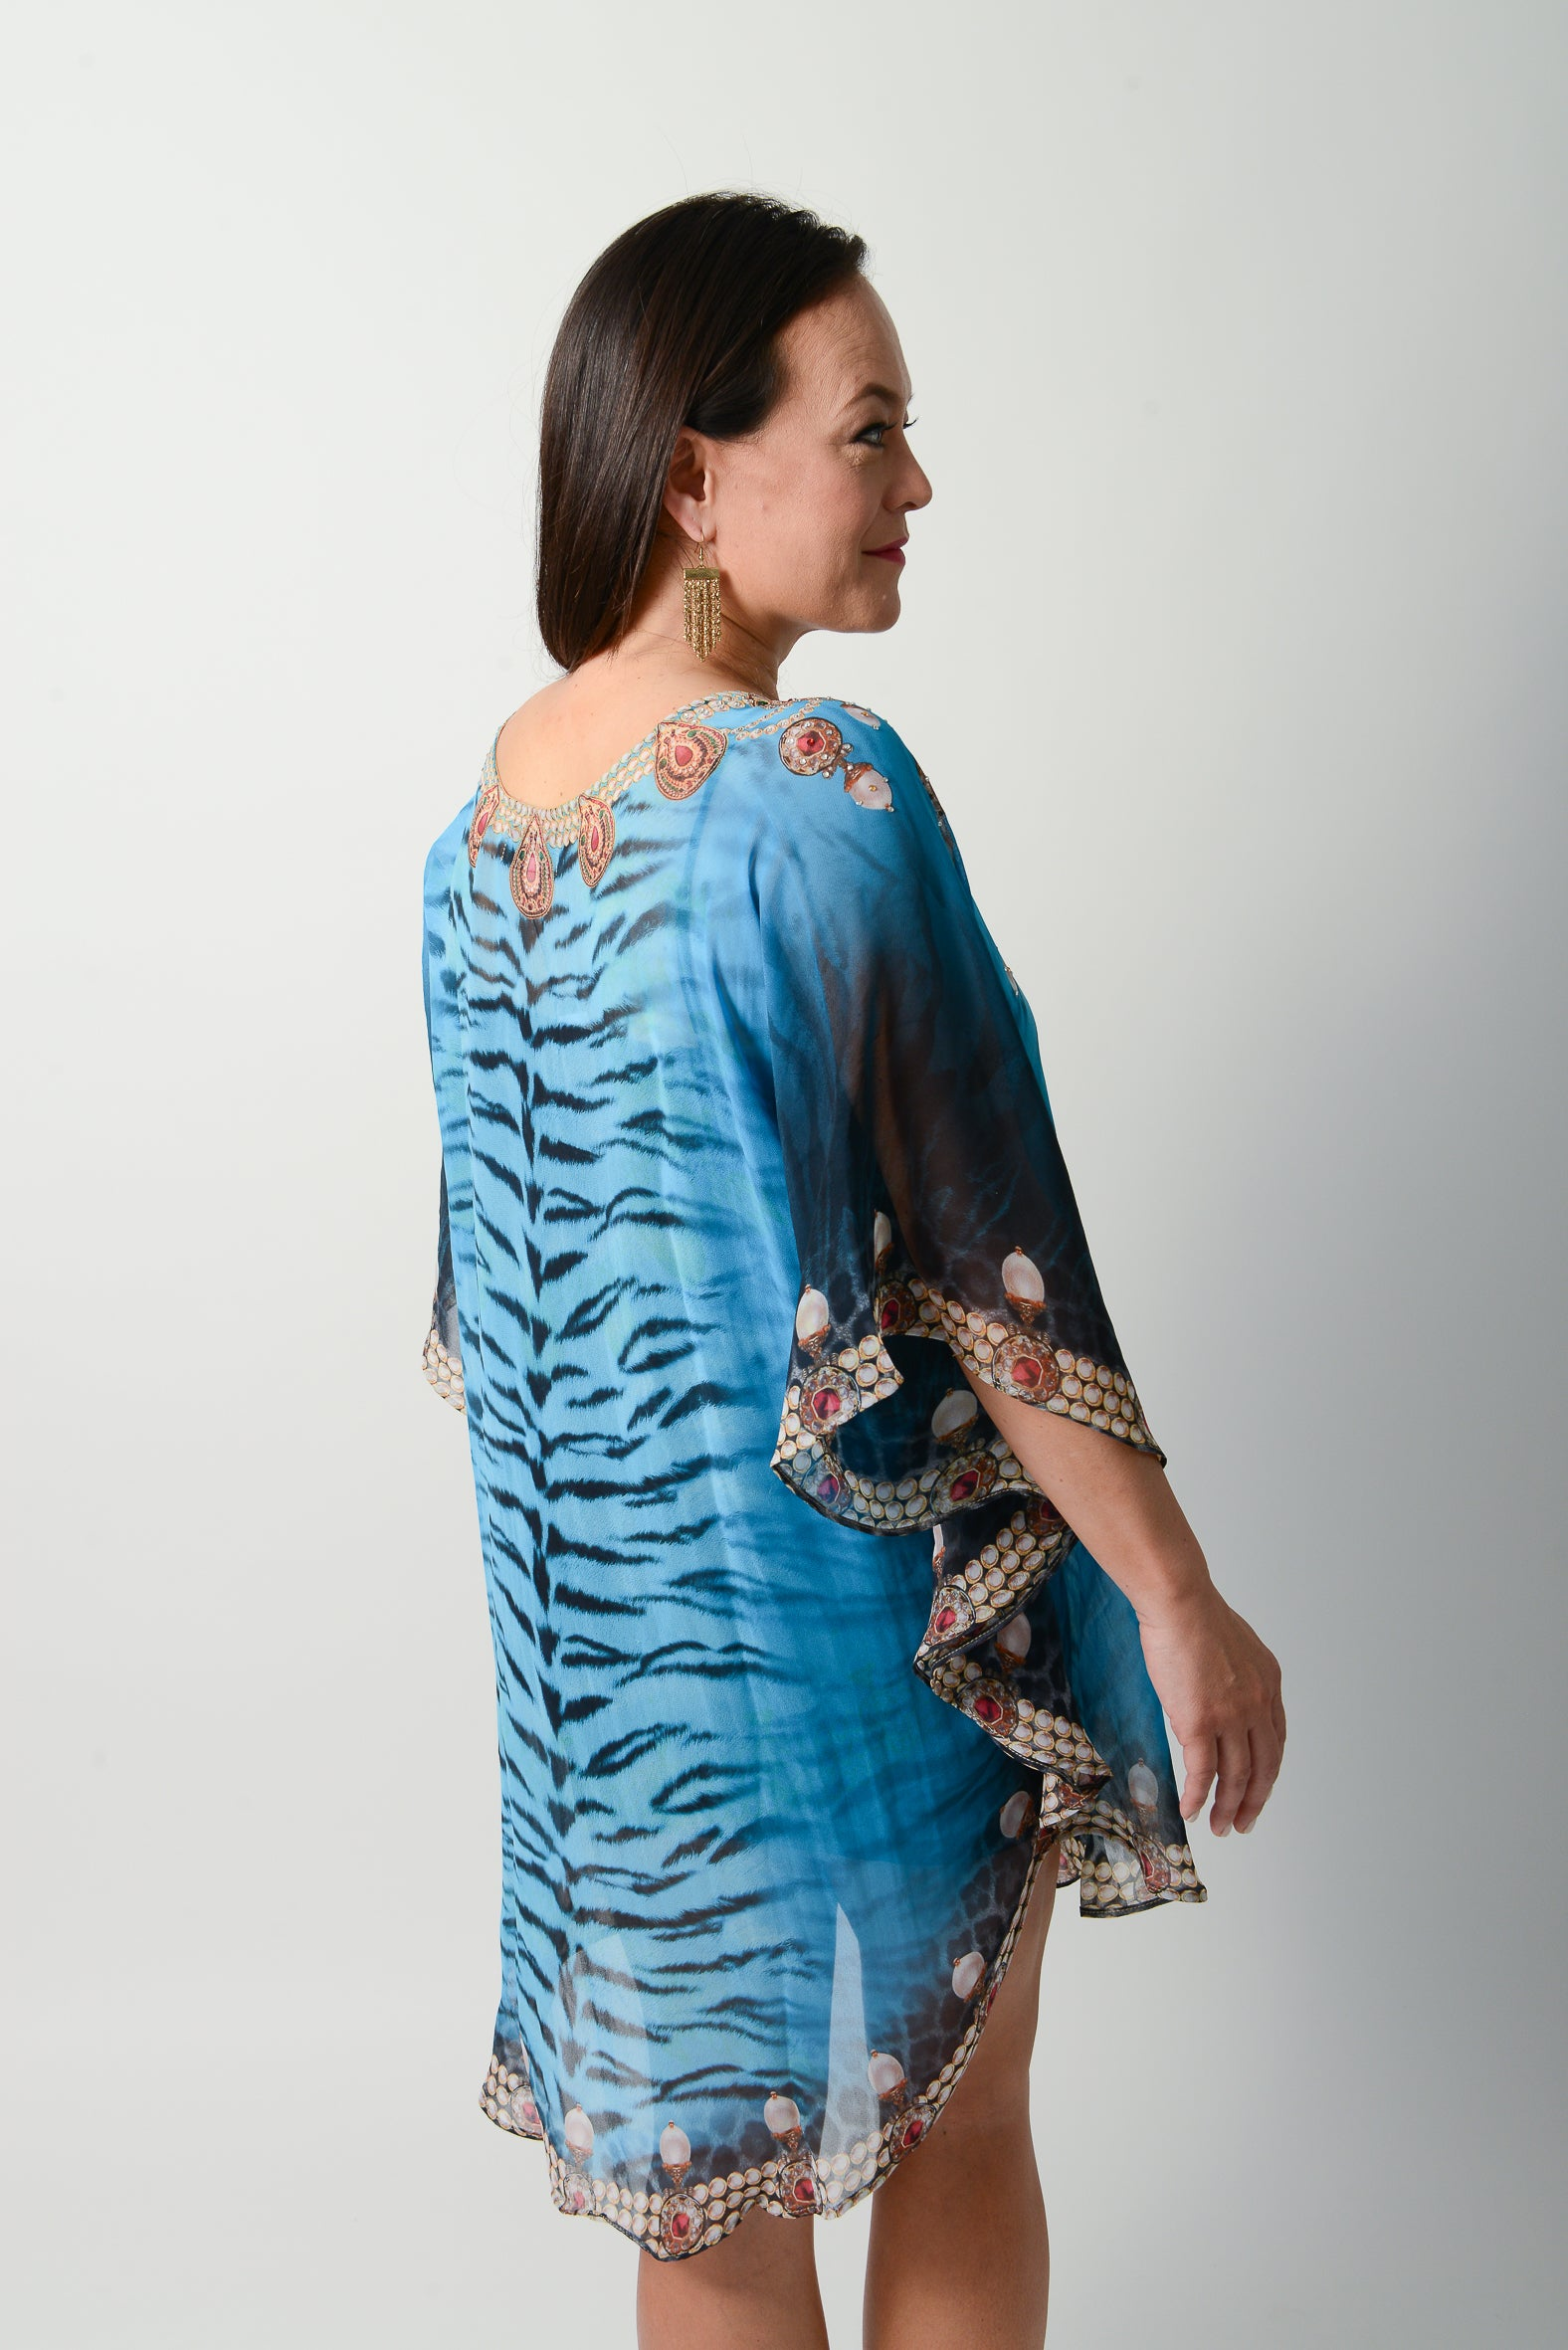 Exotic Blue Tiger Balloon Kaftan - GlamTanz Kaftans & Resortwear Sydney Australia